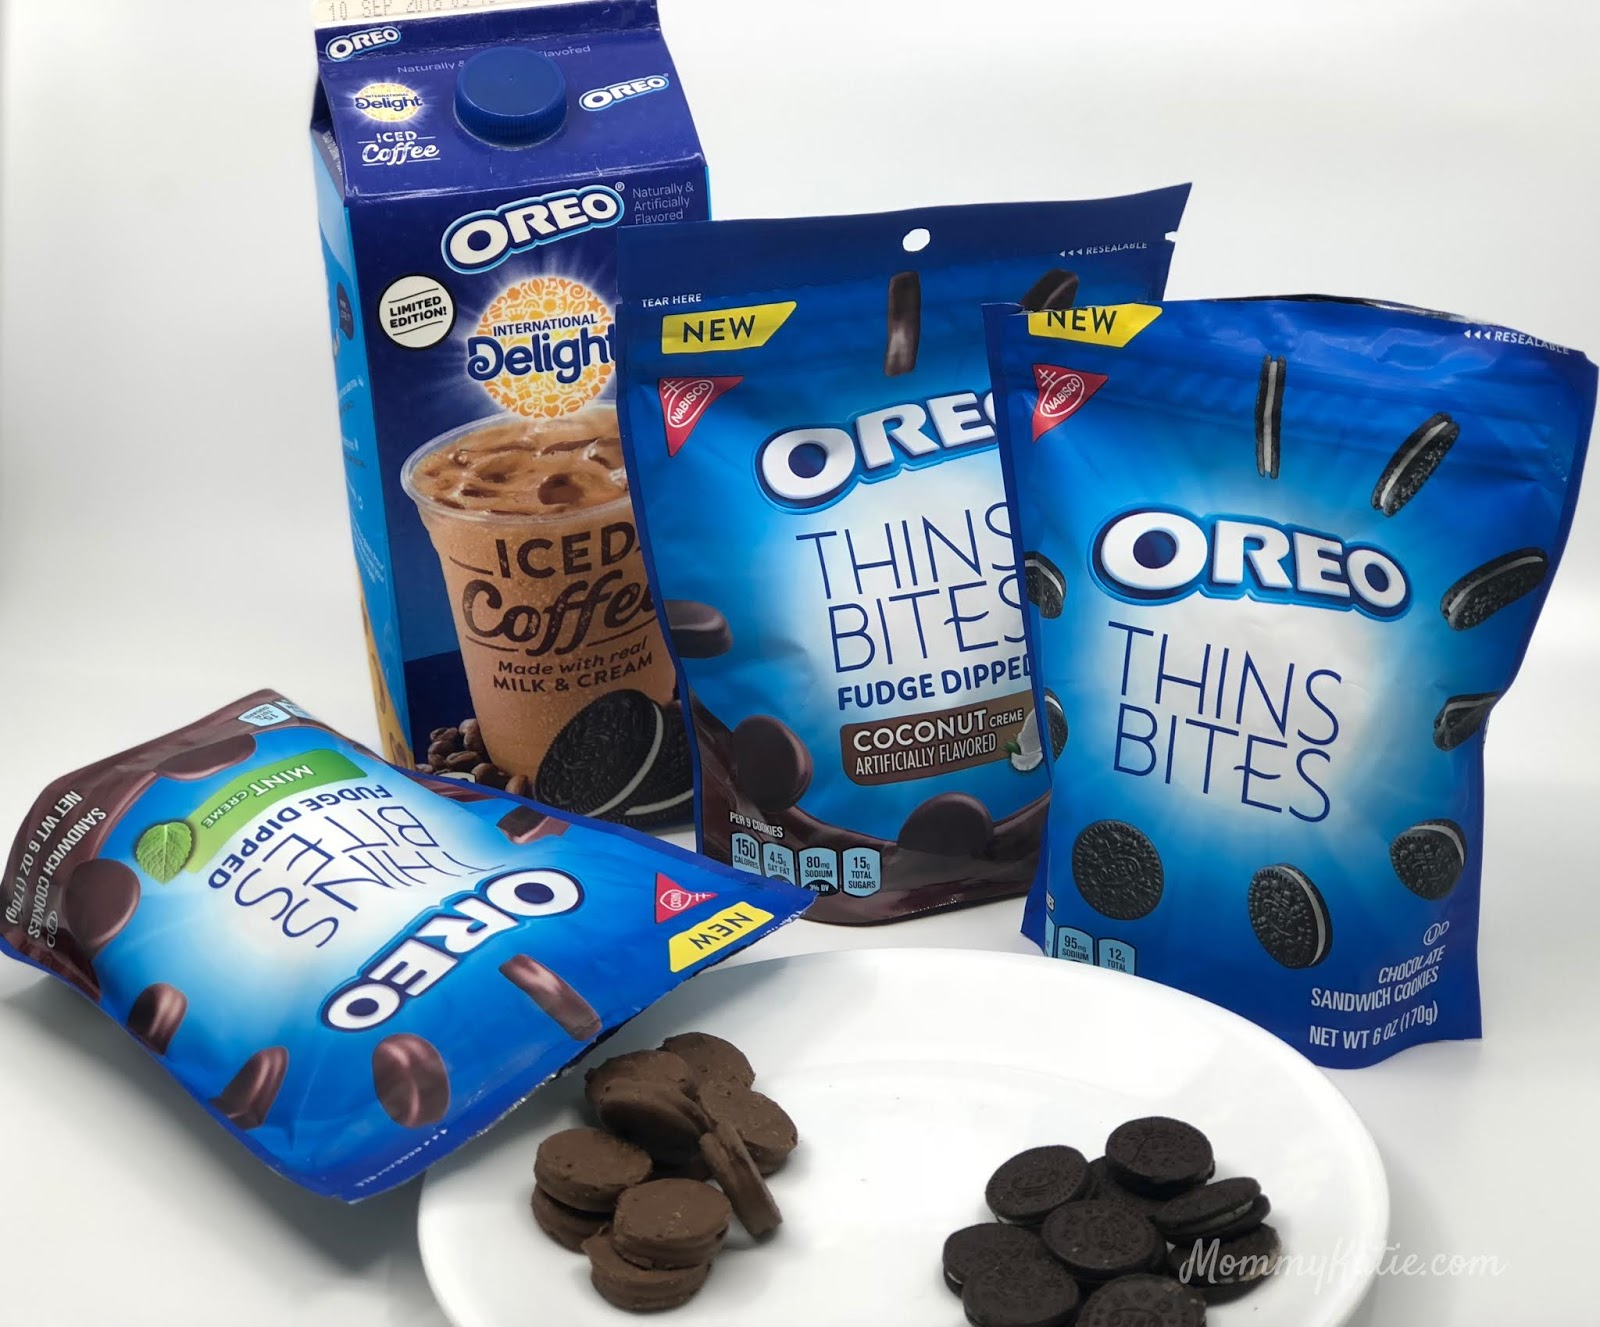 15bb13460 OREO Thins Bites and ID OREO Iced Coffee @ Walmart: a sweet deal | Mommy  Katie